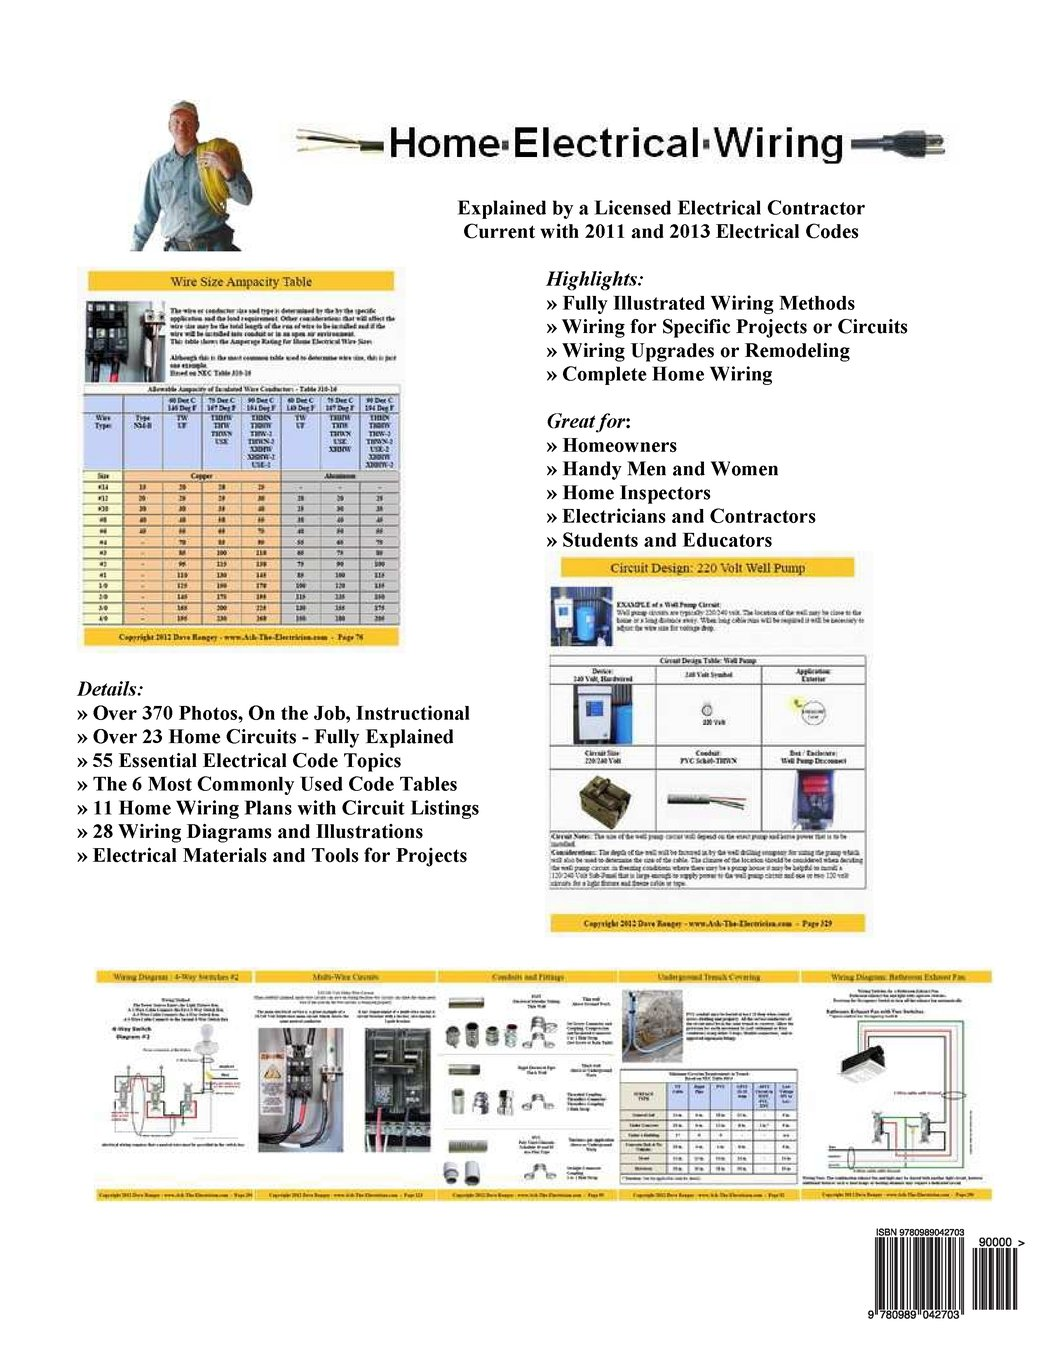 Home Electrical Wiring A Complete Guide To Electric Oven Circuit Diagram Explained By Licensed Contractor David W Rongey